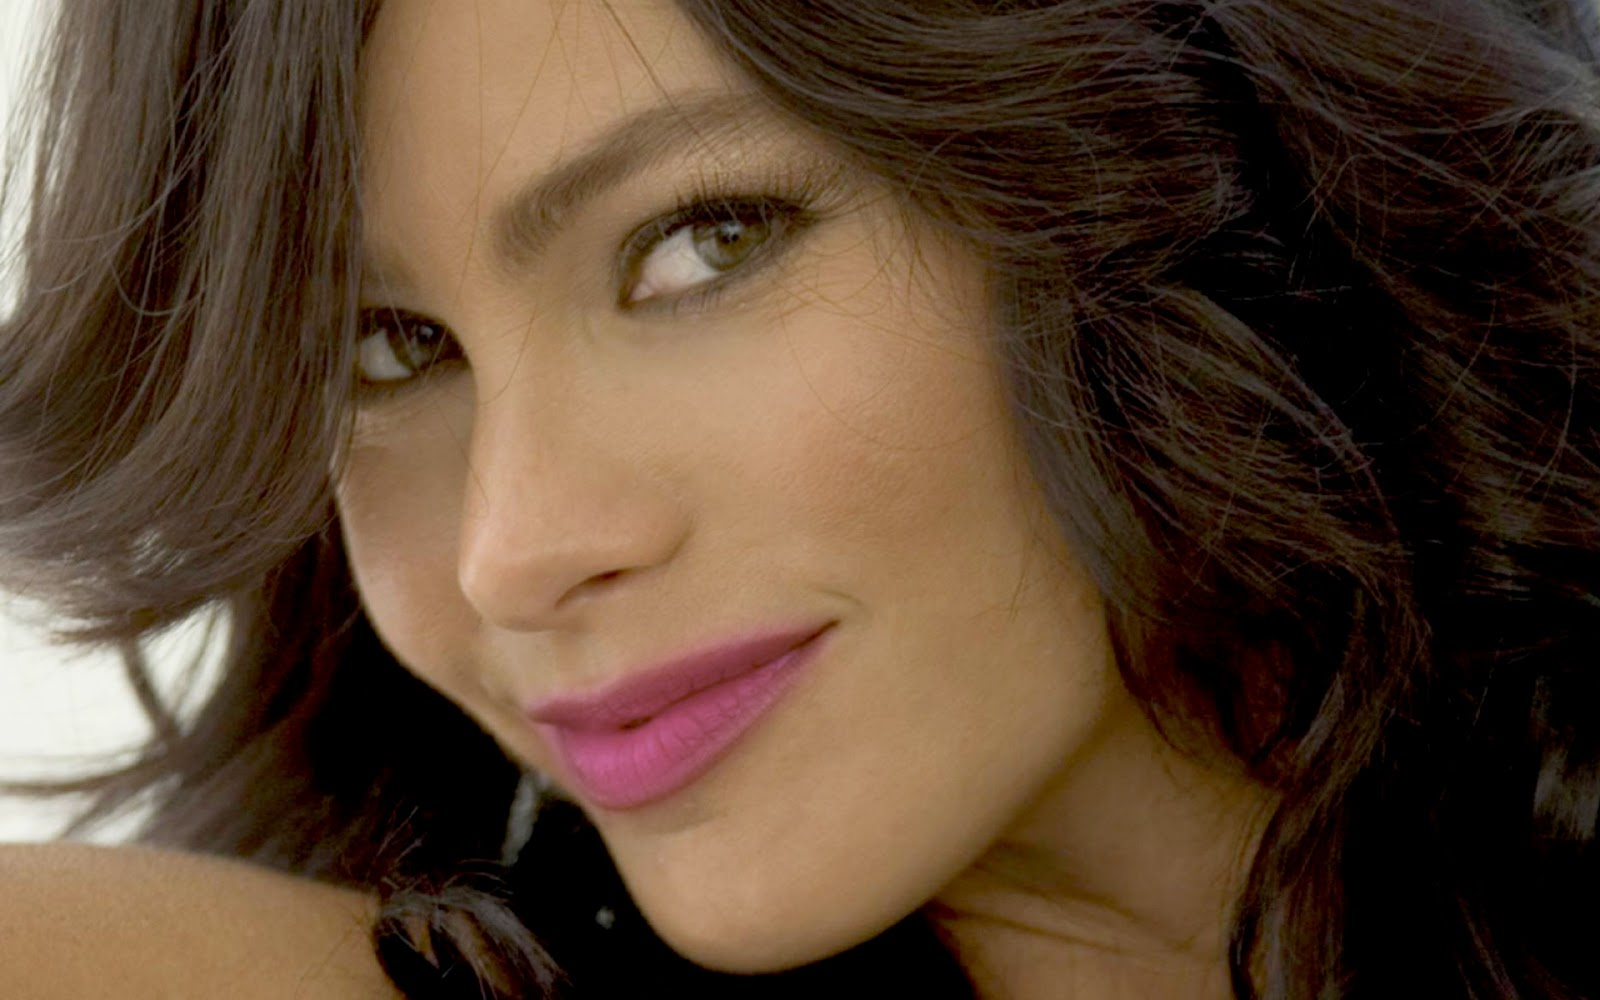 http://2.bp.blogspot.com/-tnBN29_9Ihw/UOvmnWskvsI/AAAAAAAAHa0/moIPpOriosE/s1600/sofia-vergara-close-up-wallpaper.jpg